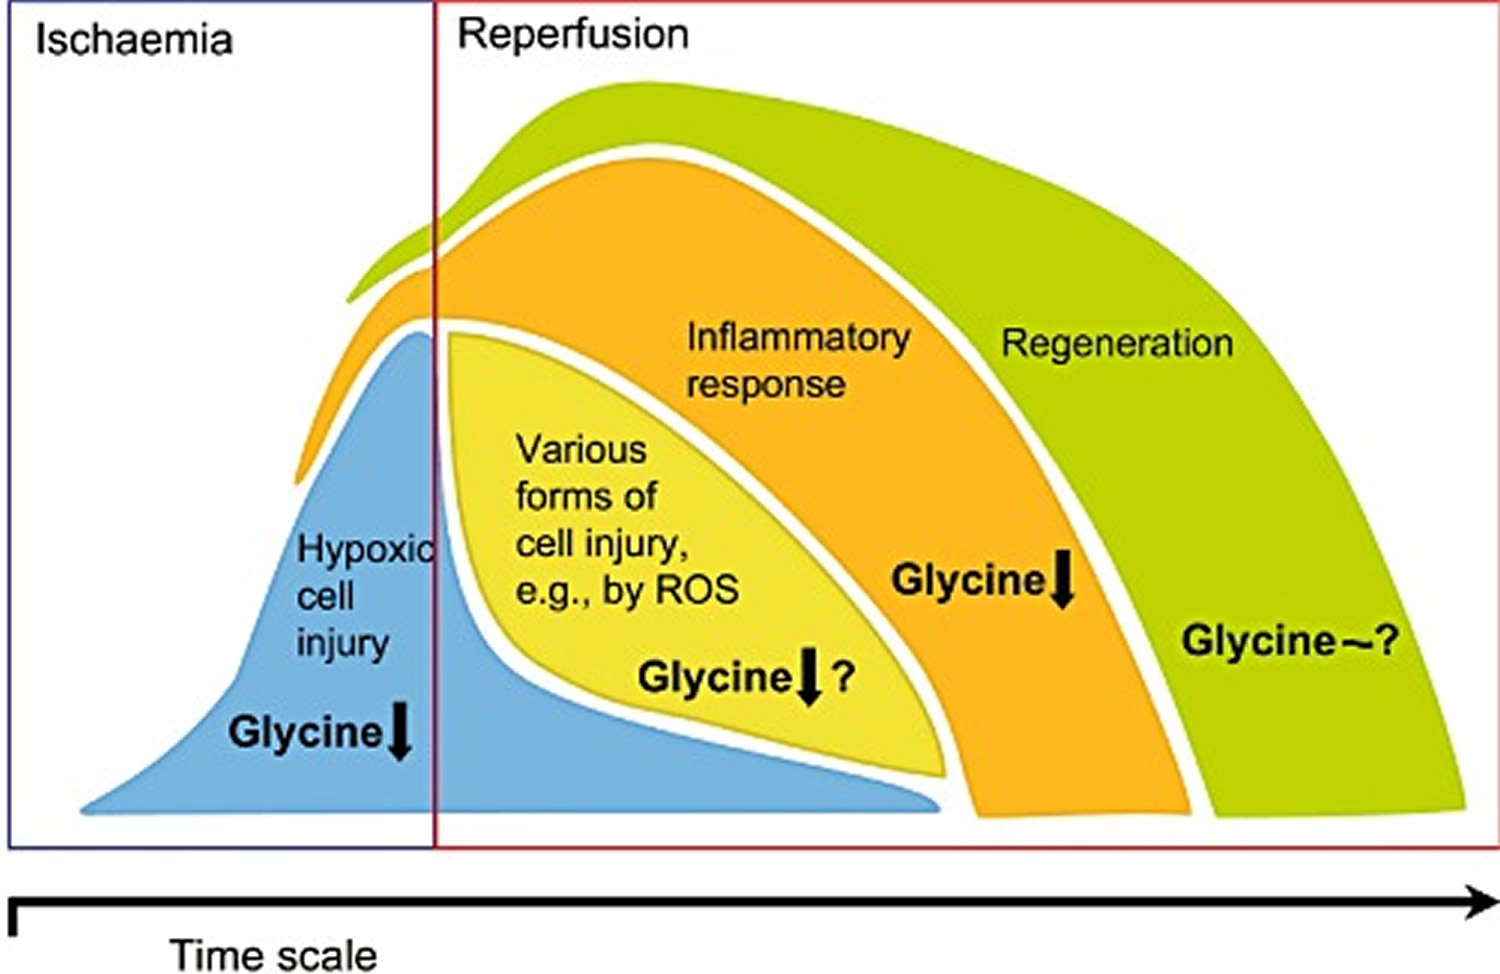 protective effects of glycine following ischemia